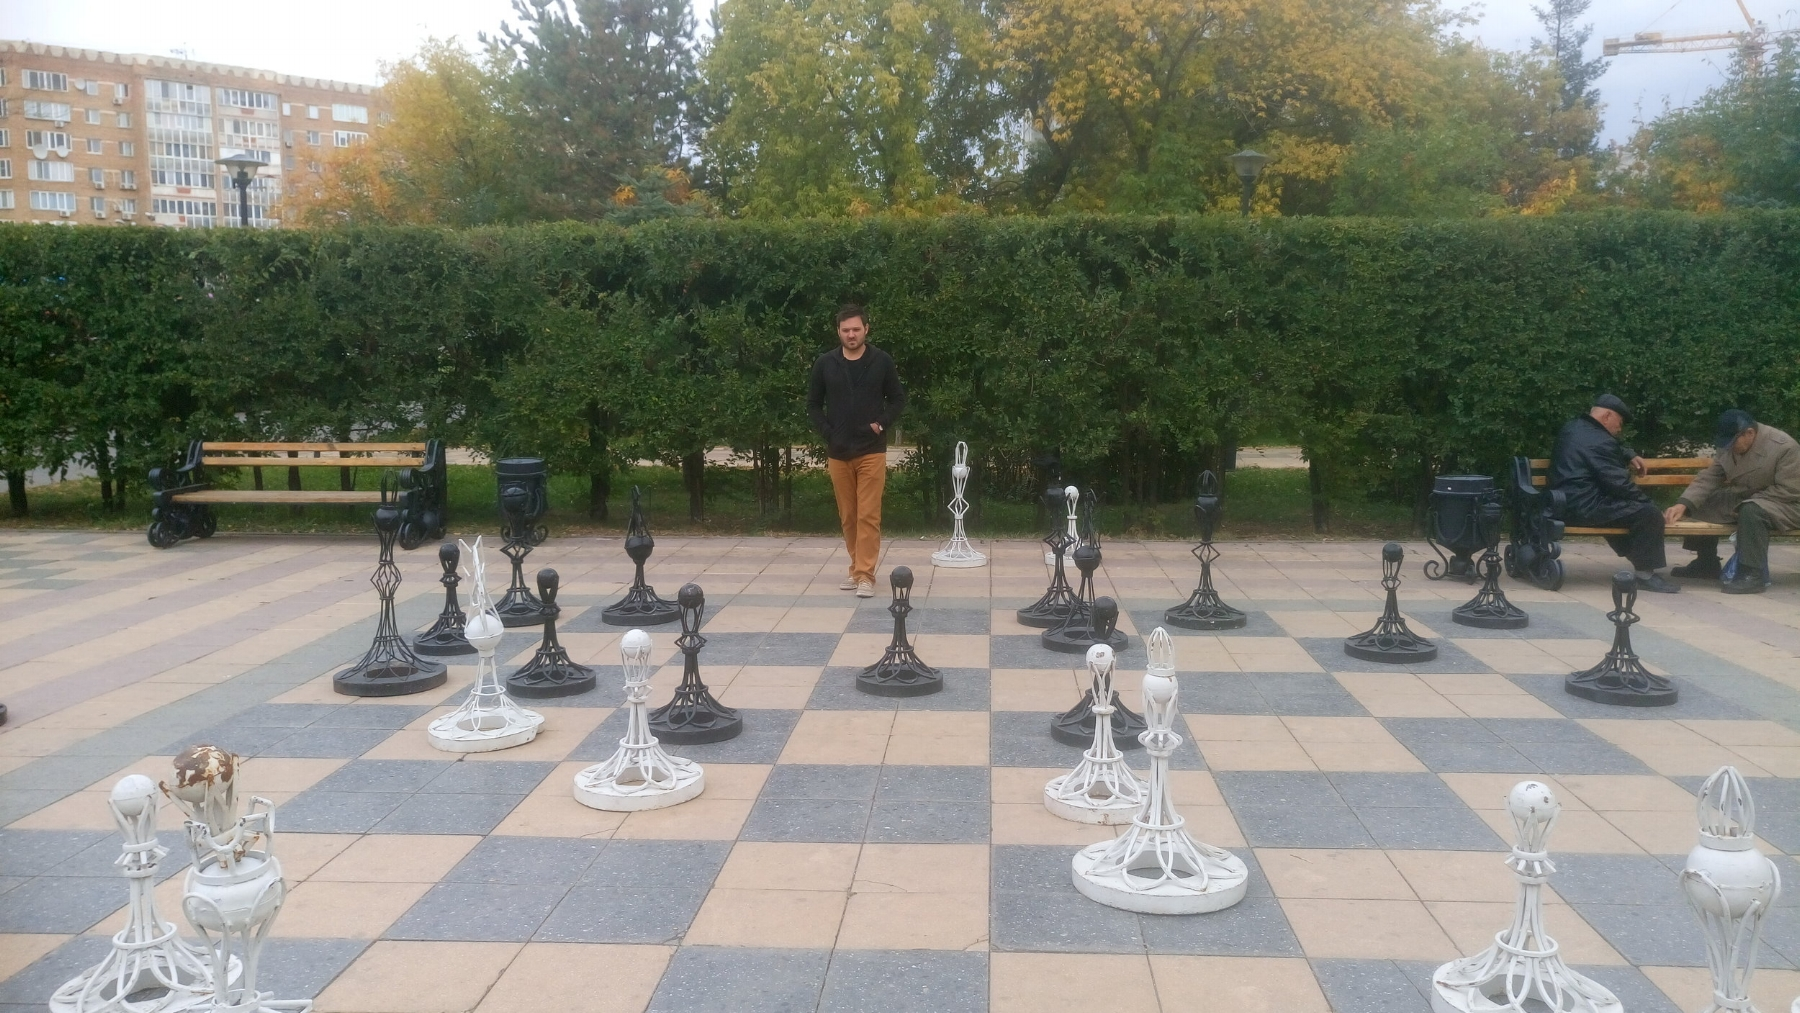 Playing my friend in chess, park in Astana, Kazakhstan